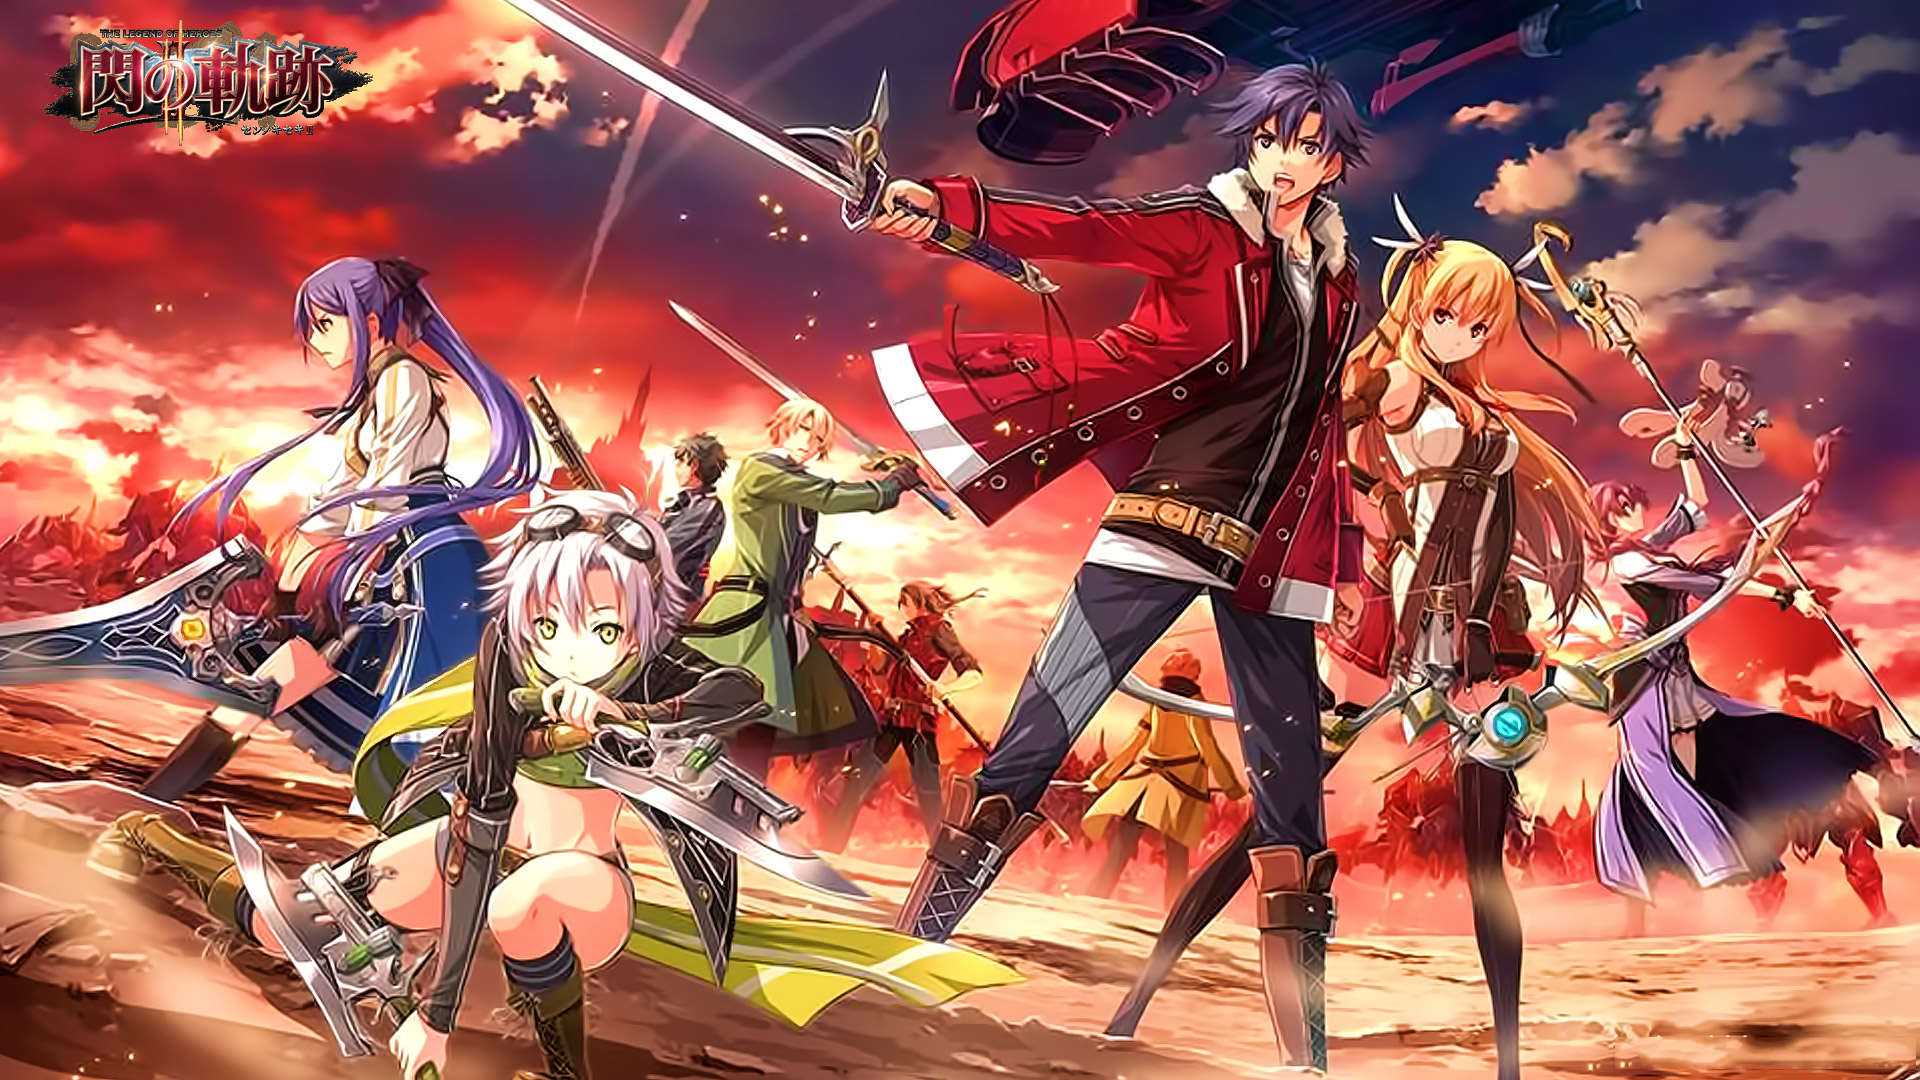 Free The Legend of Heroes: Trails of Cold Steel Wallpaper in 1920x1080